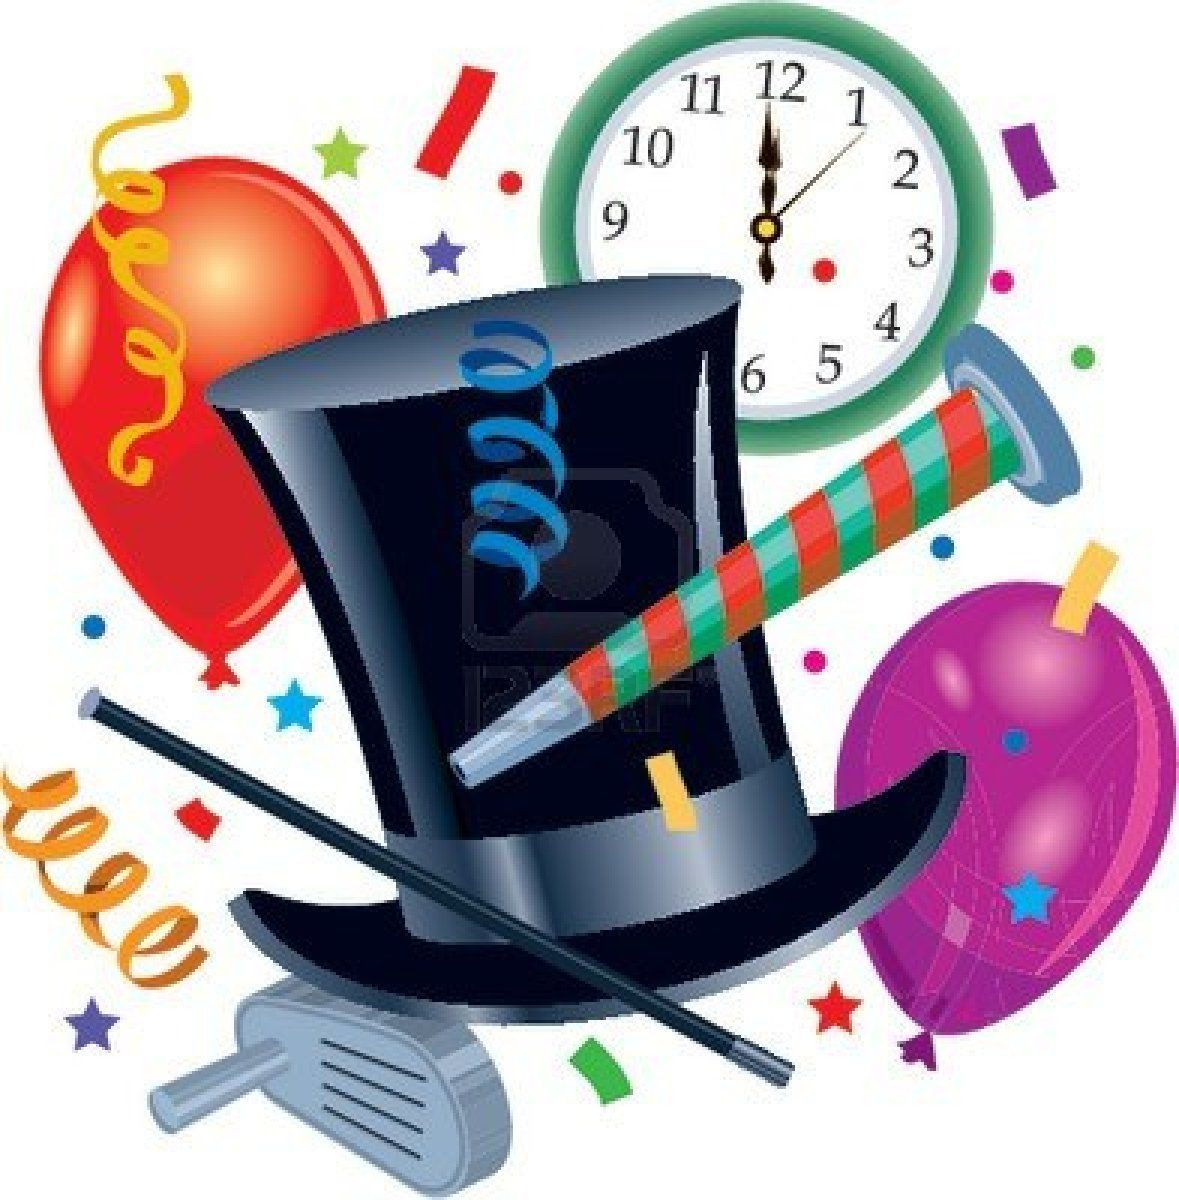 Free Christian New Years Eve Clipart | Free Images at Clker.com - vector clip  art online, royalty free & public domain